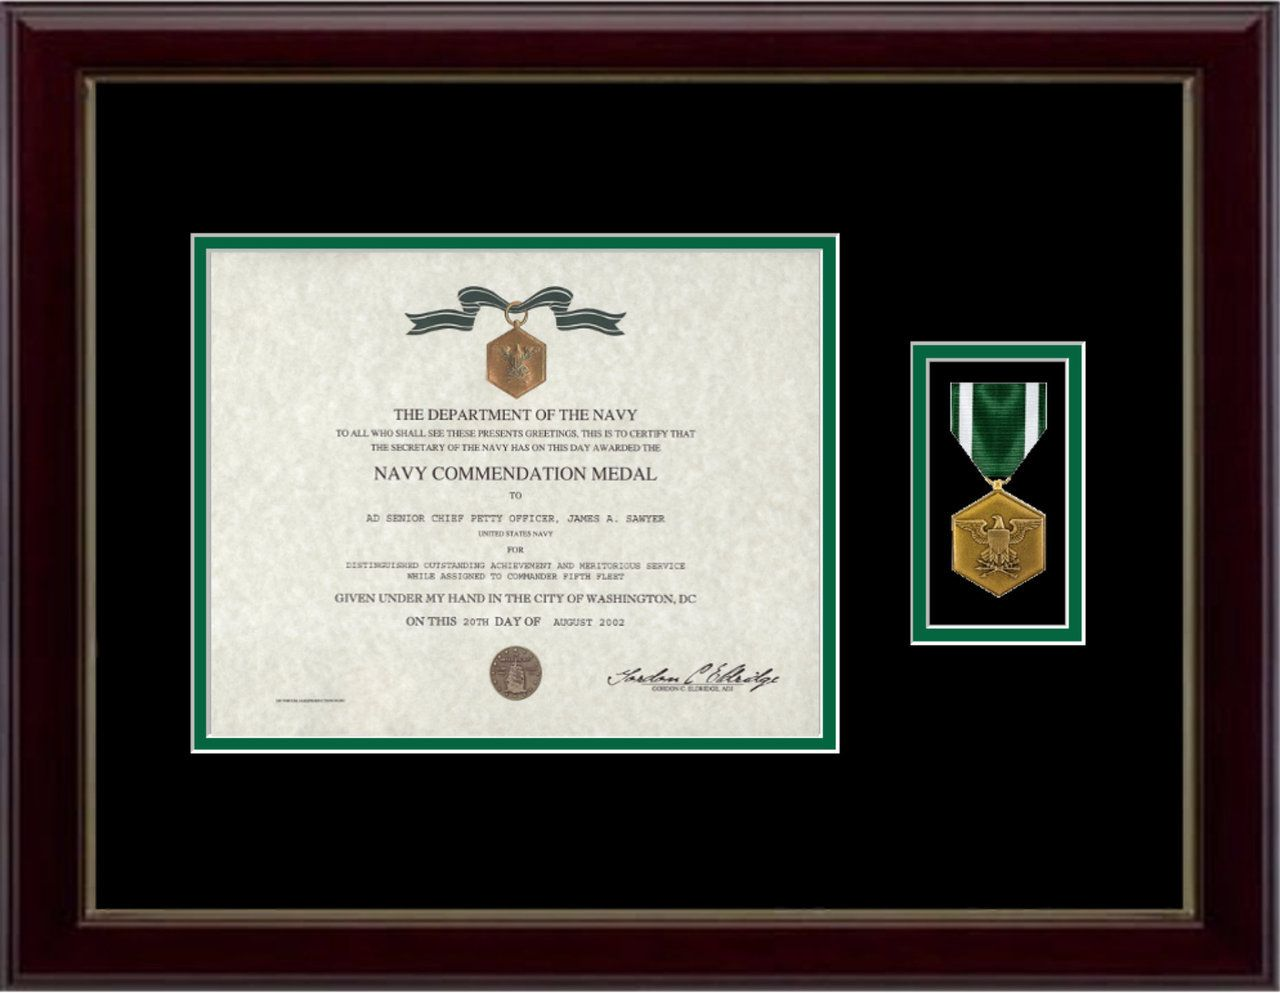 Navy/Marine Commendation Certificate Frame | Pinterest